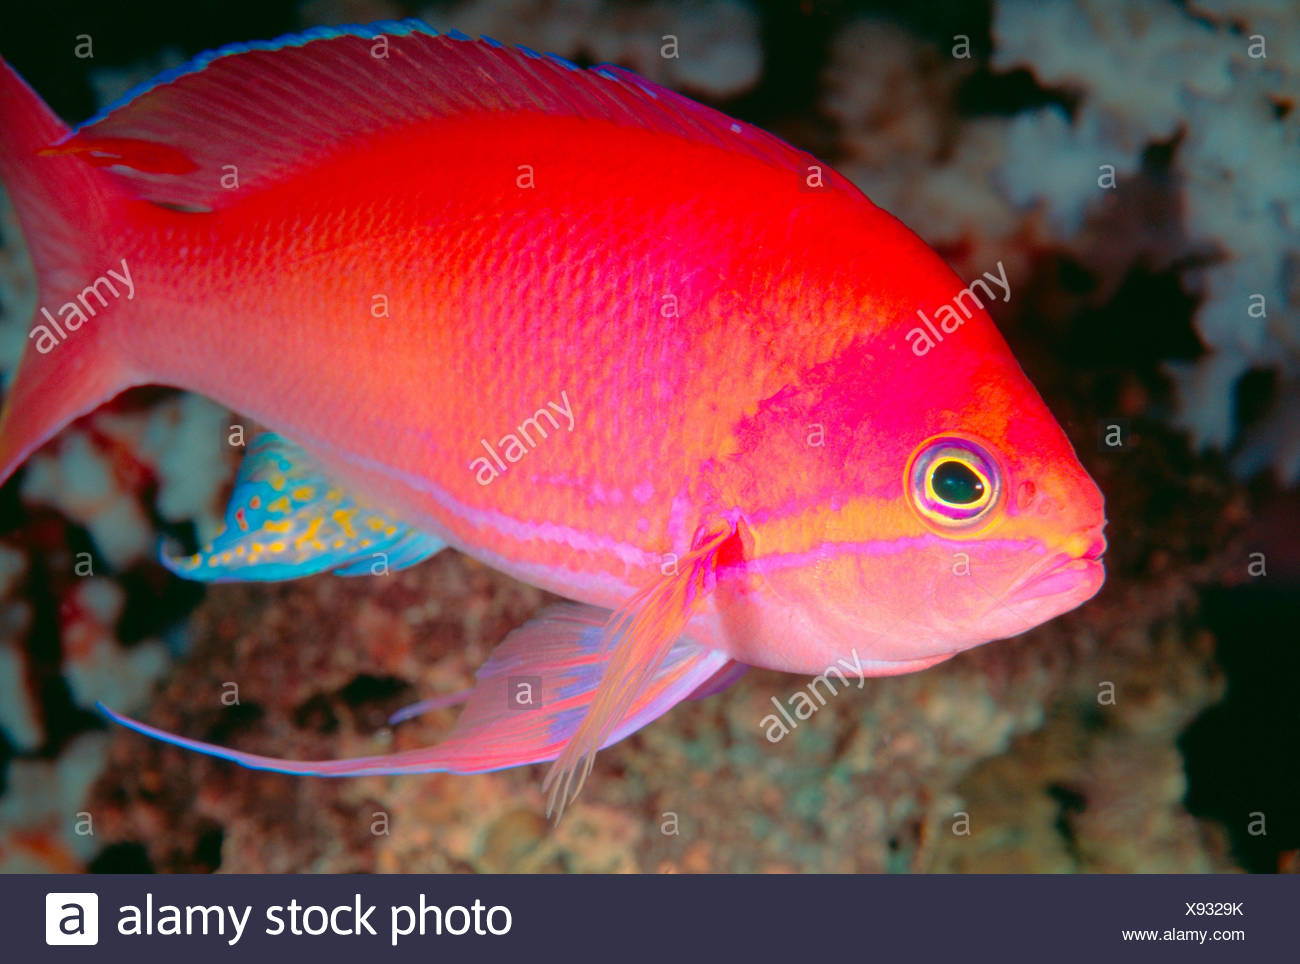 Tropical Fish Close Up Stock Photos & Tropical Fish Close Up Stock ...